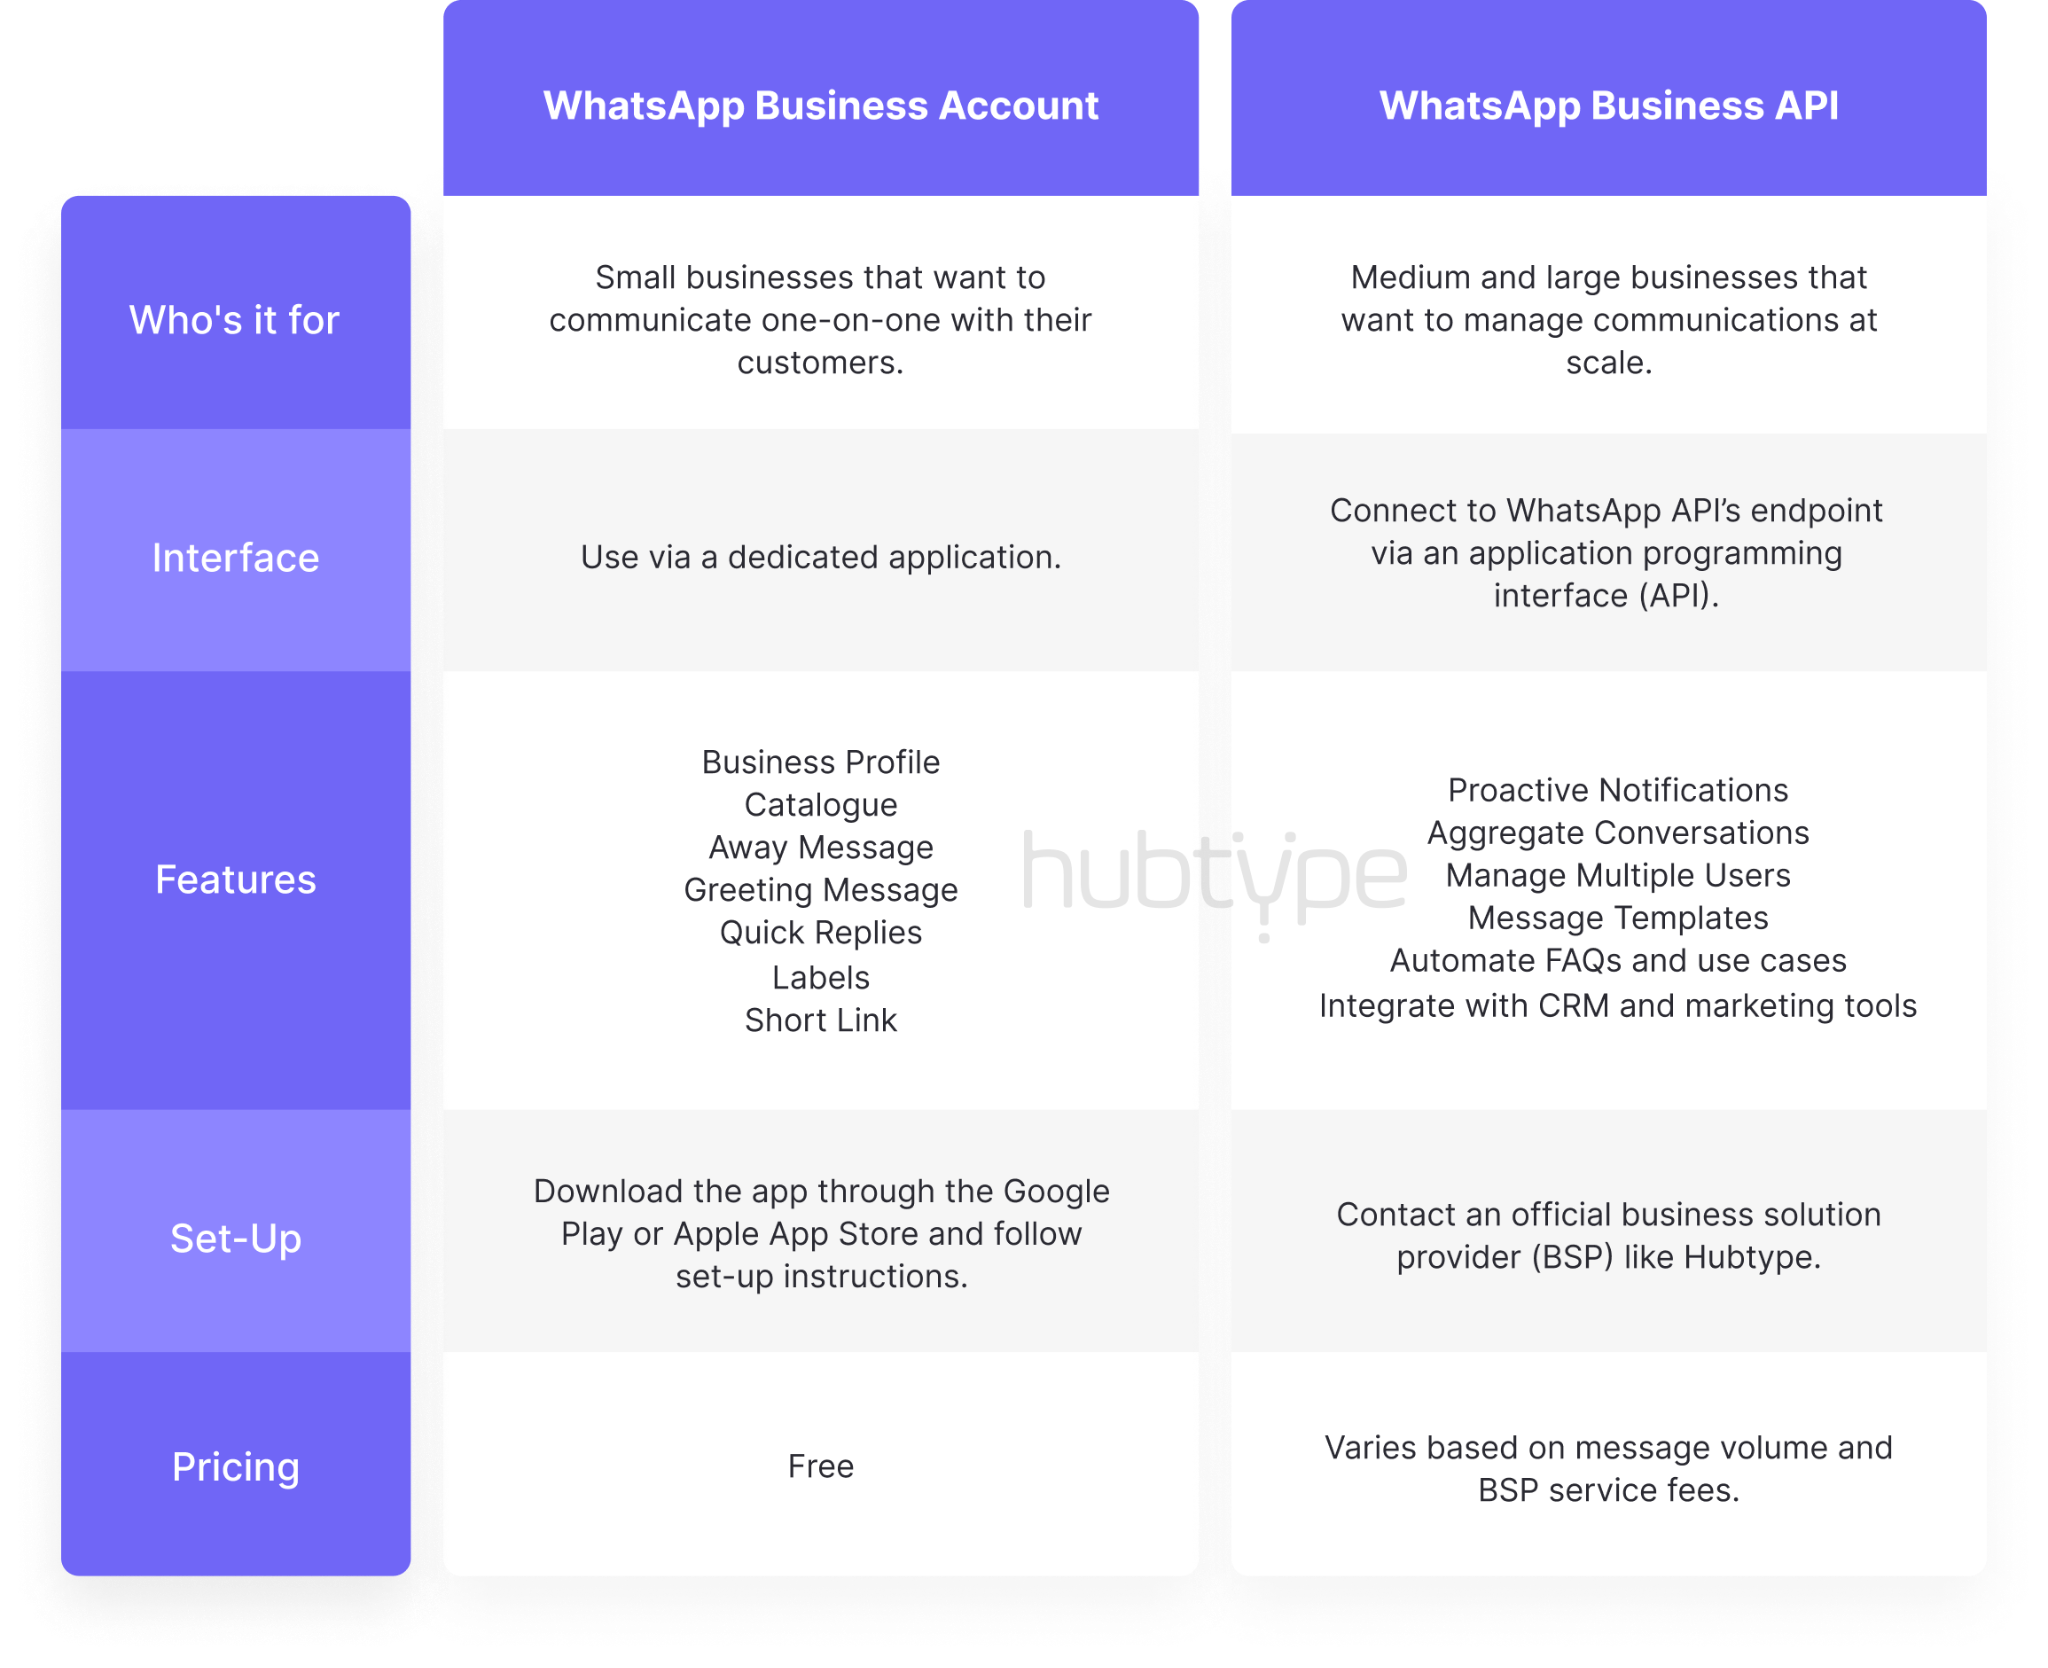 Difference between a WhatsApp Business Account and the WhatsApp Business API